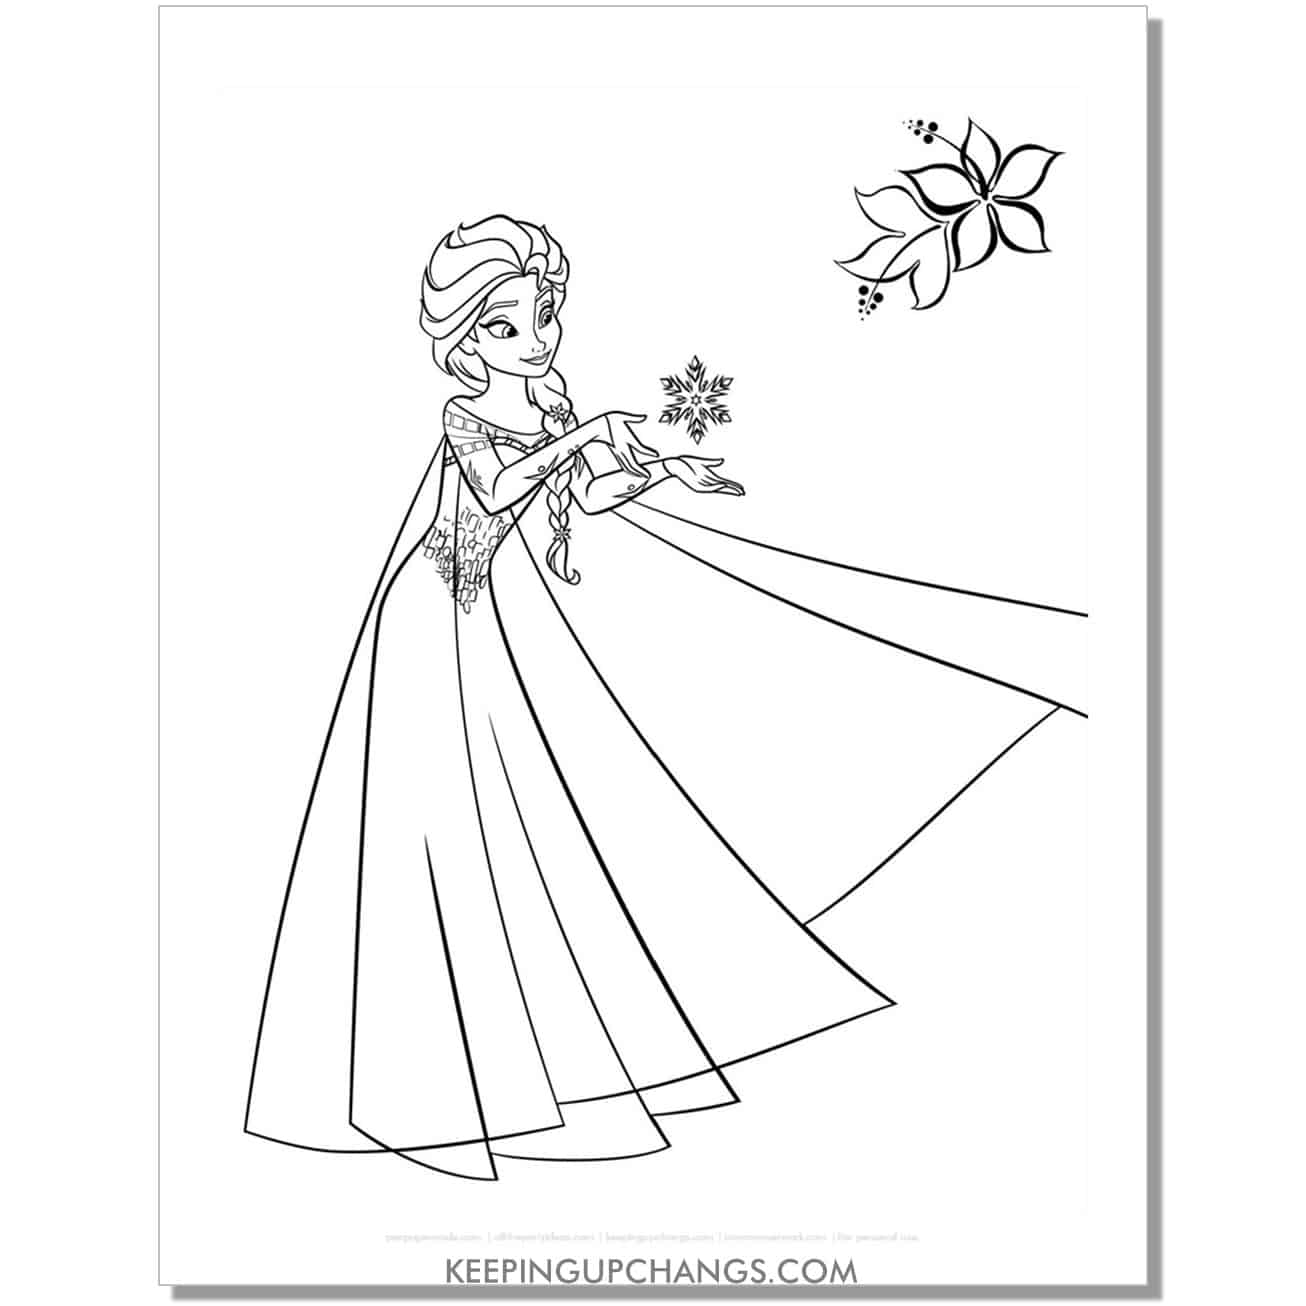 free elsa learning to use magic frozen coloring page.